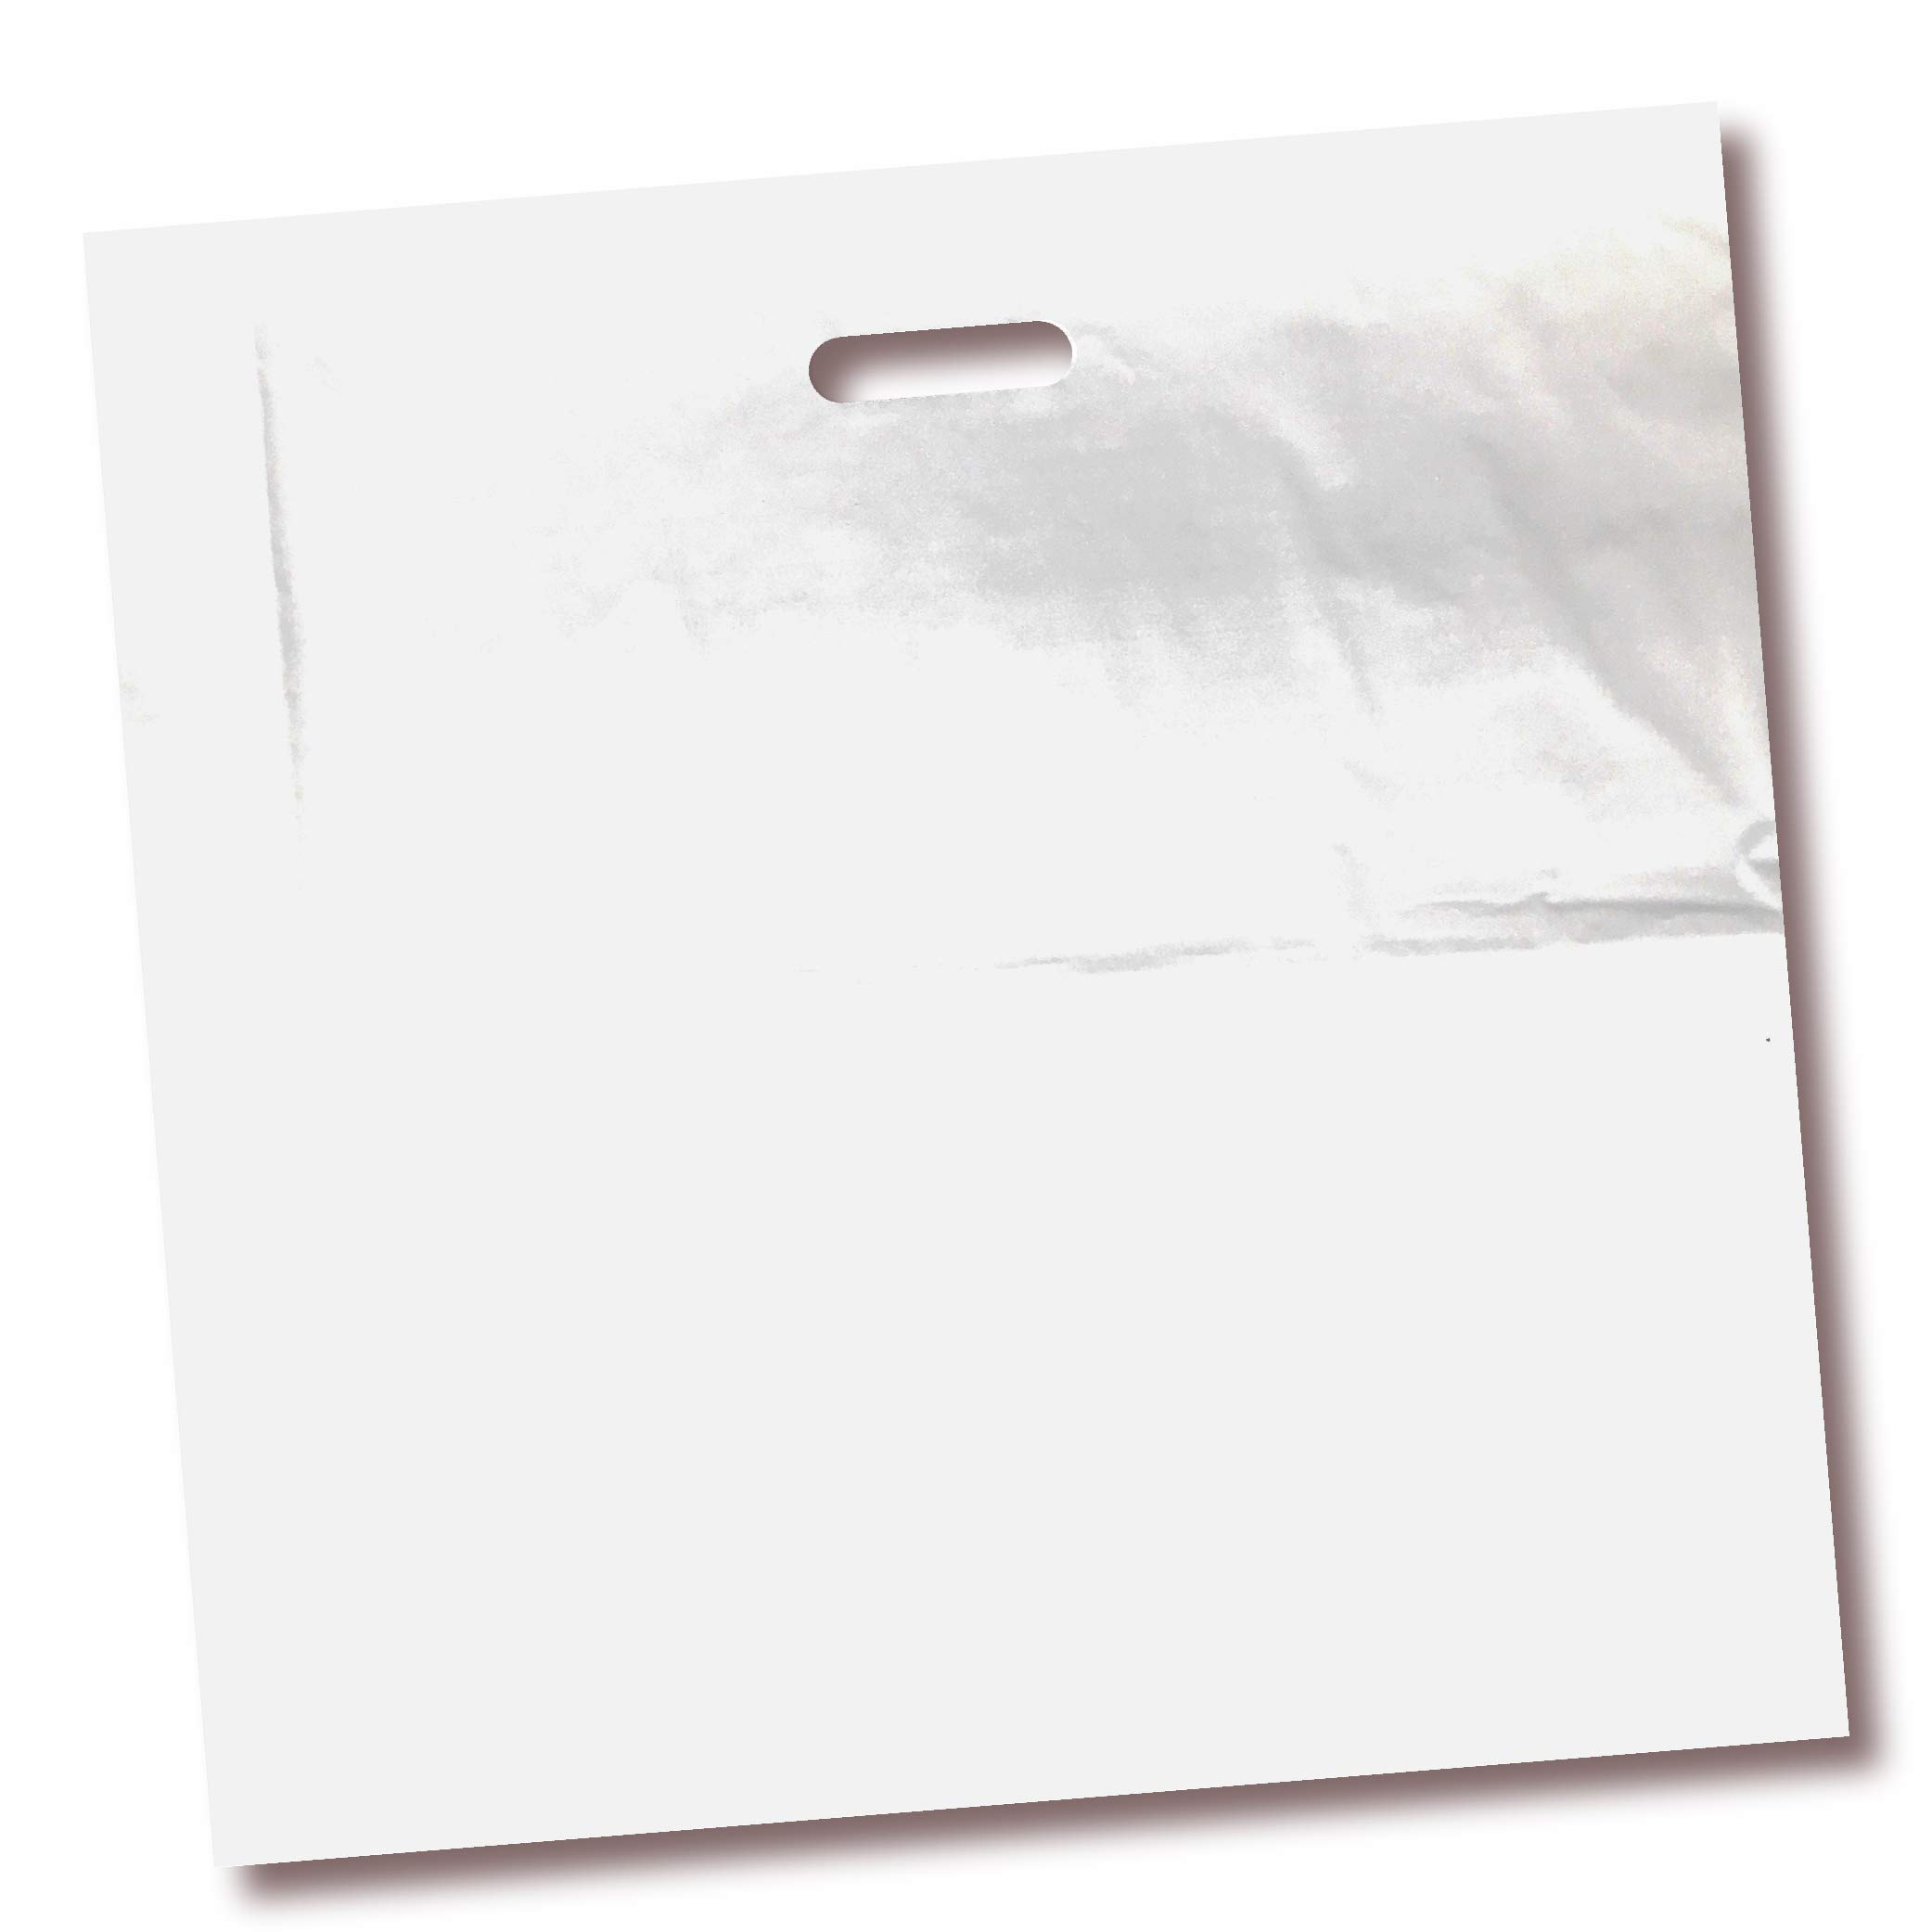 100 Pack 18'' x 18'' with 2 mil Thick White Merchandise Plastic Glossy Retail Bags | Die Cut Handles | Perfect for Shopping, Party Favors, Birthdays, Children Parties | Color White | 100% Recyclable